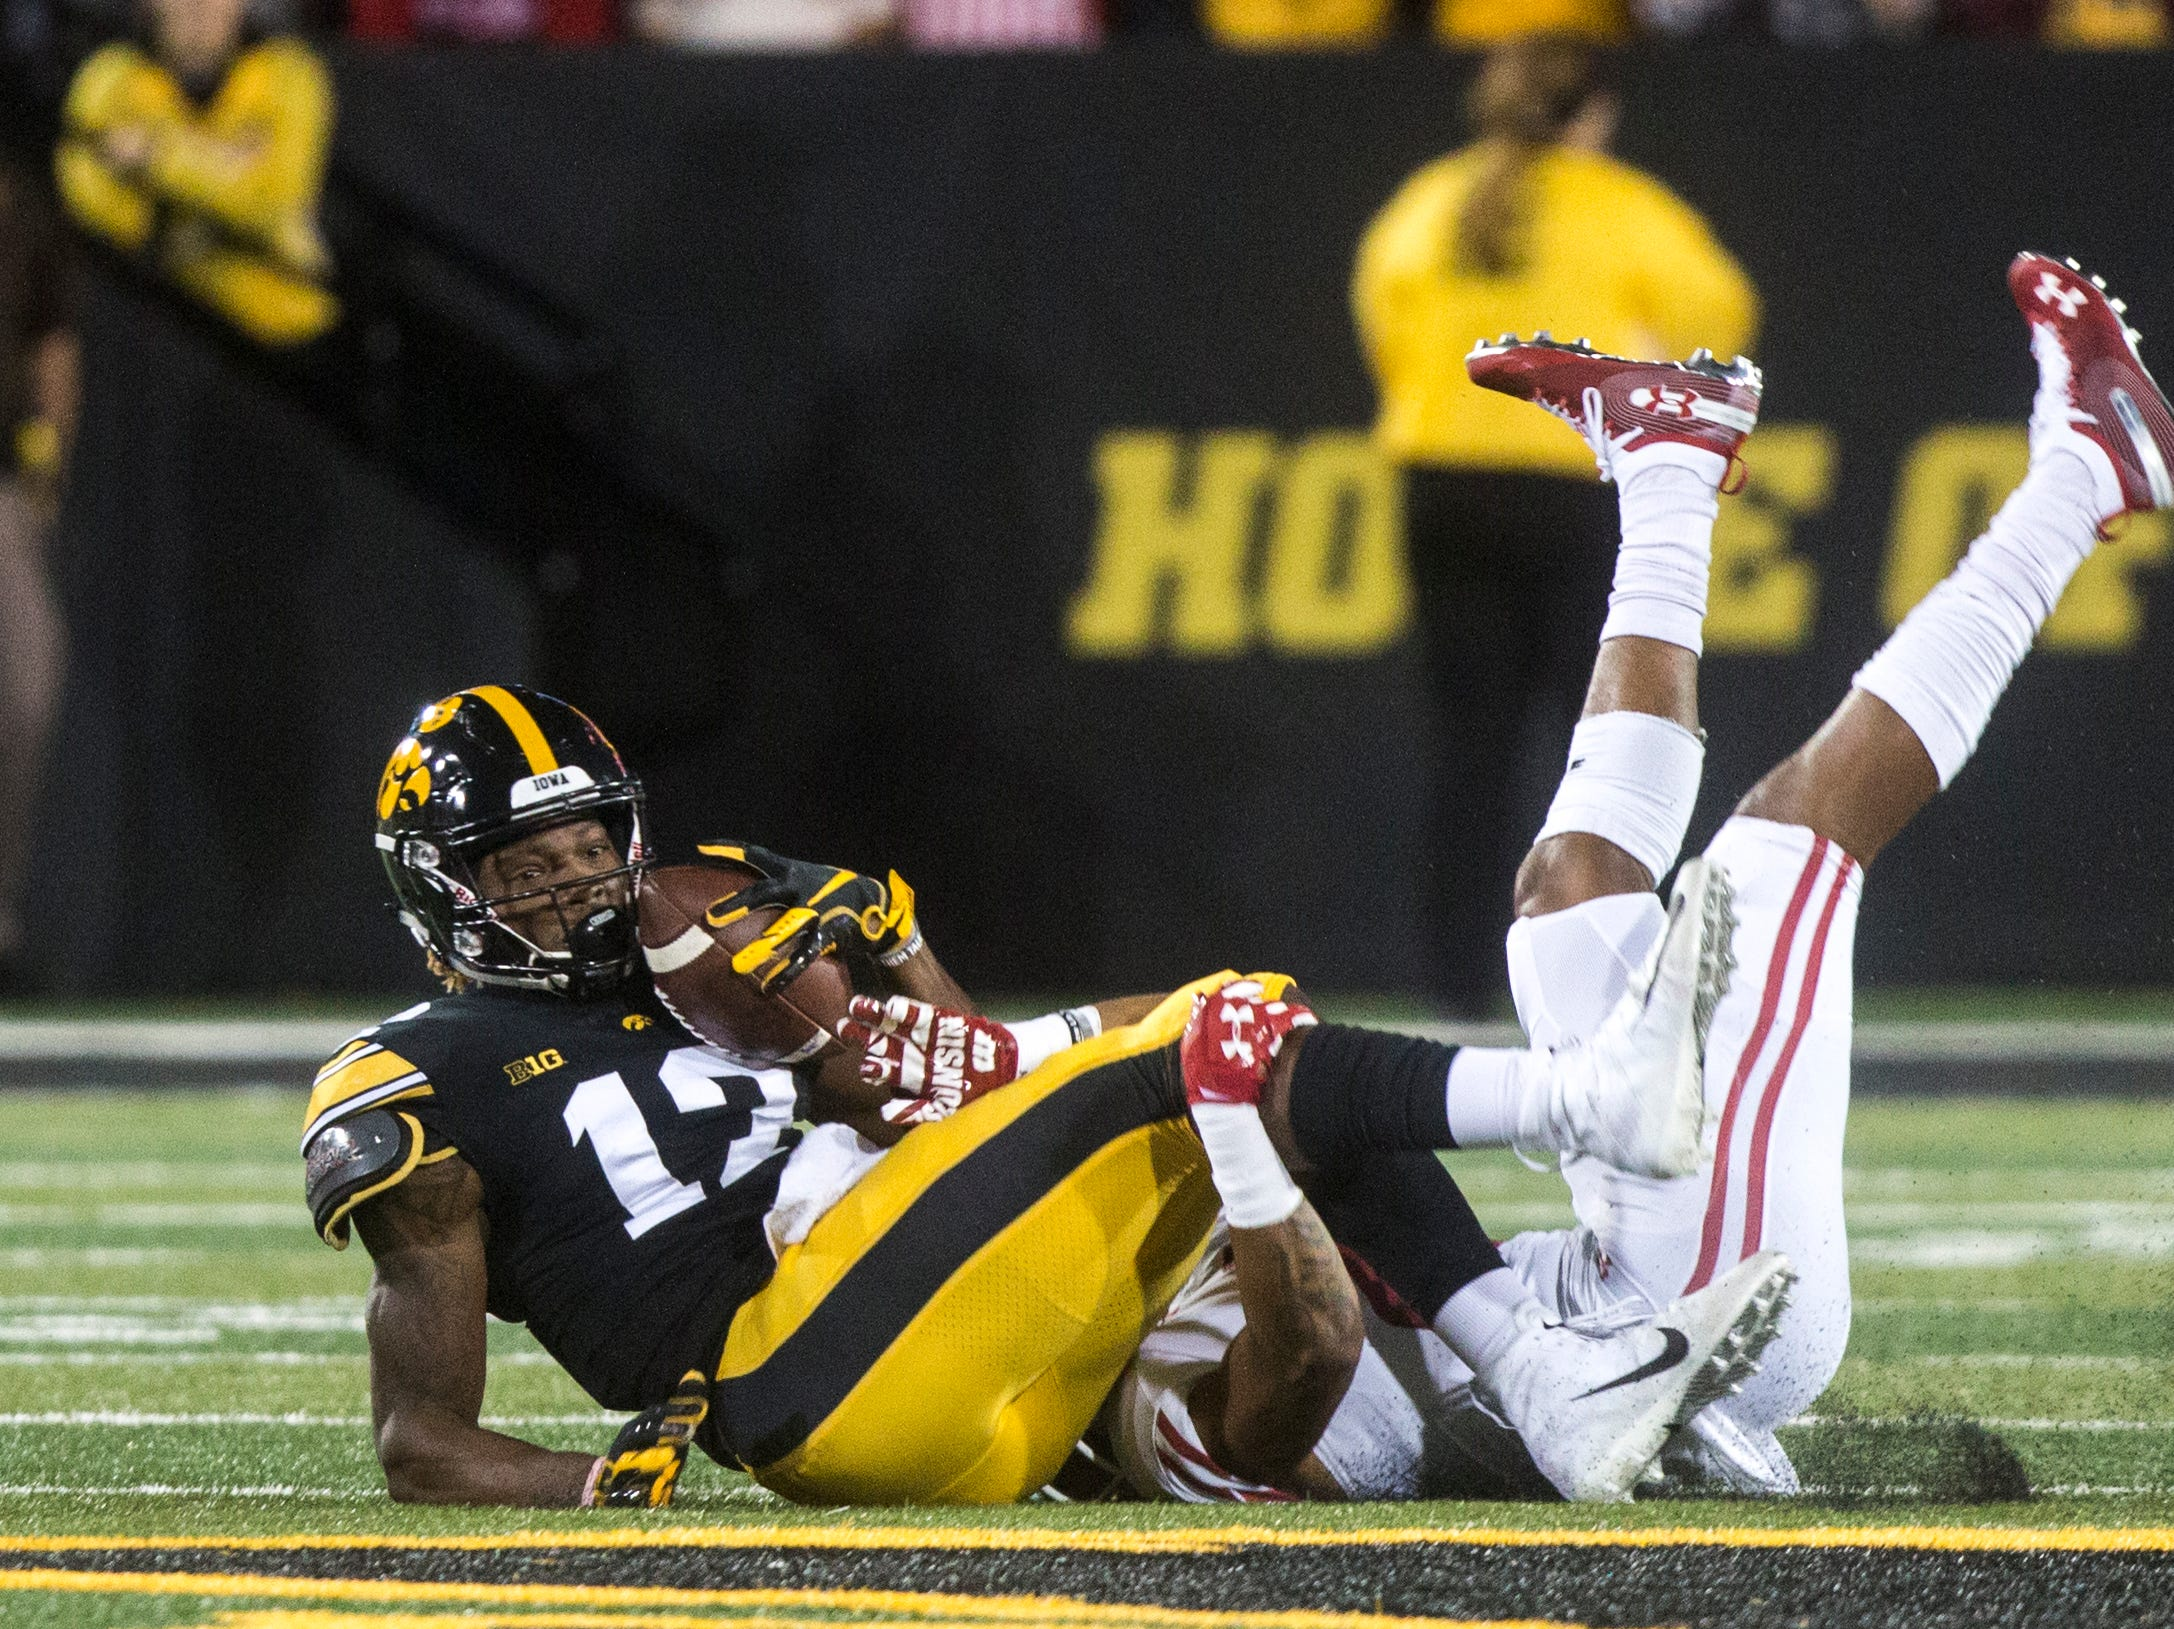 Iowa wide receiver Brandon Smith (12) comes down with a ball during an NCAA football game on Saturday, Sept. 22, 2018, at Kinnick Stadium in Iowa City.